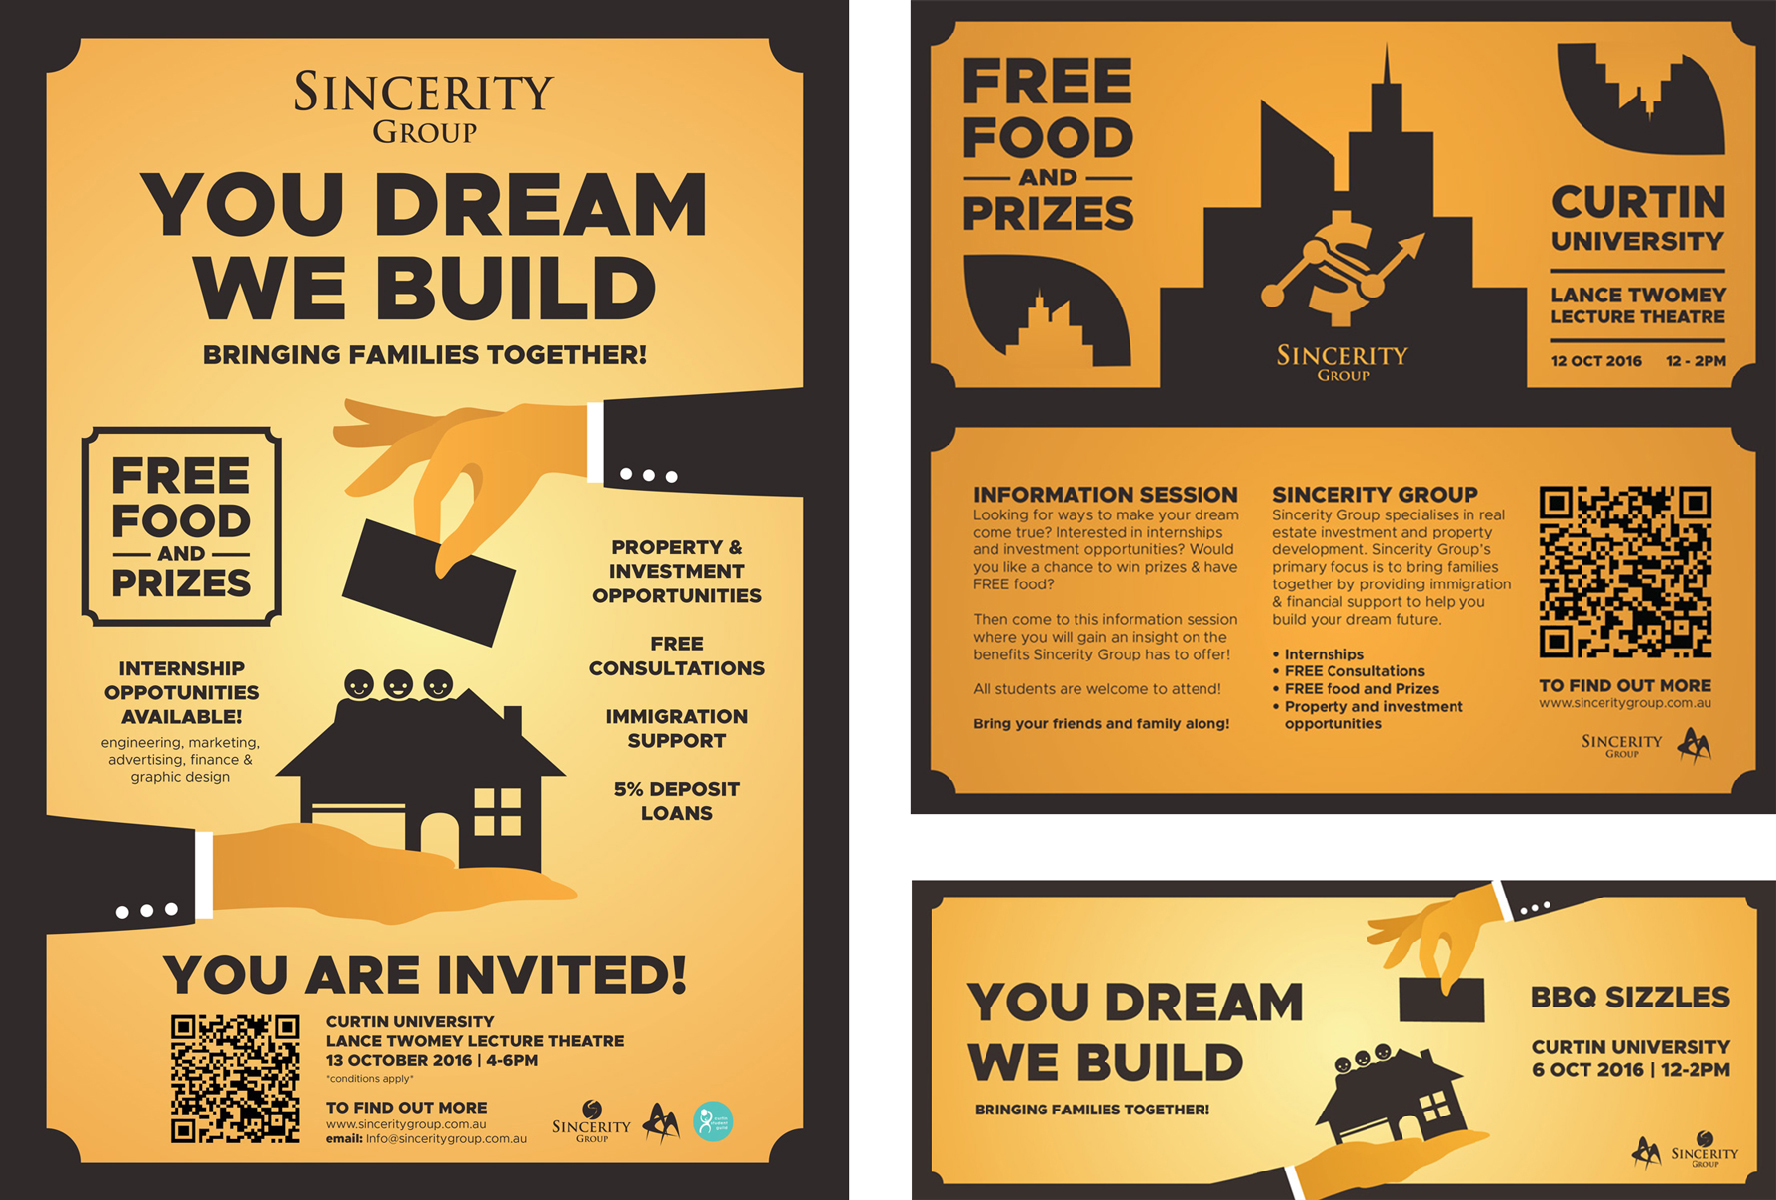 Sincerity Group promotional poster, pamphlet and Facebook banner. (2016)